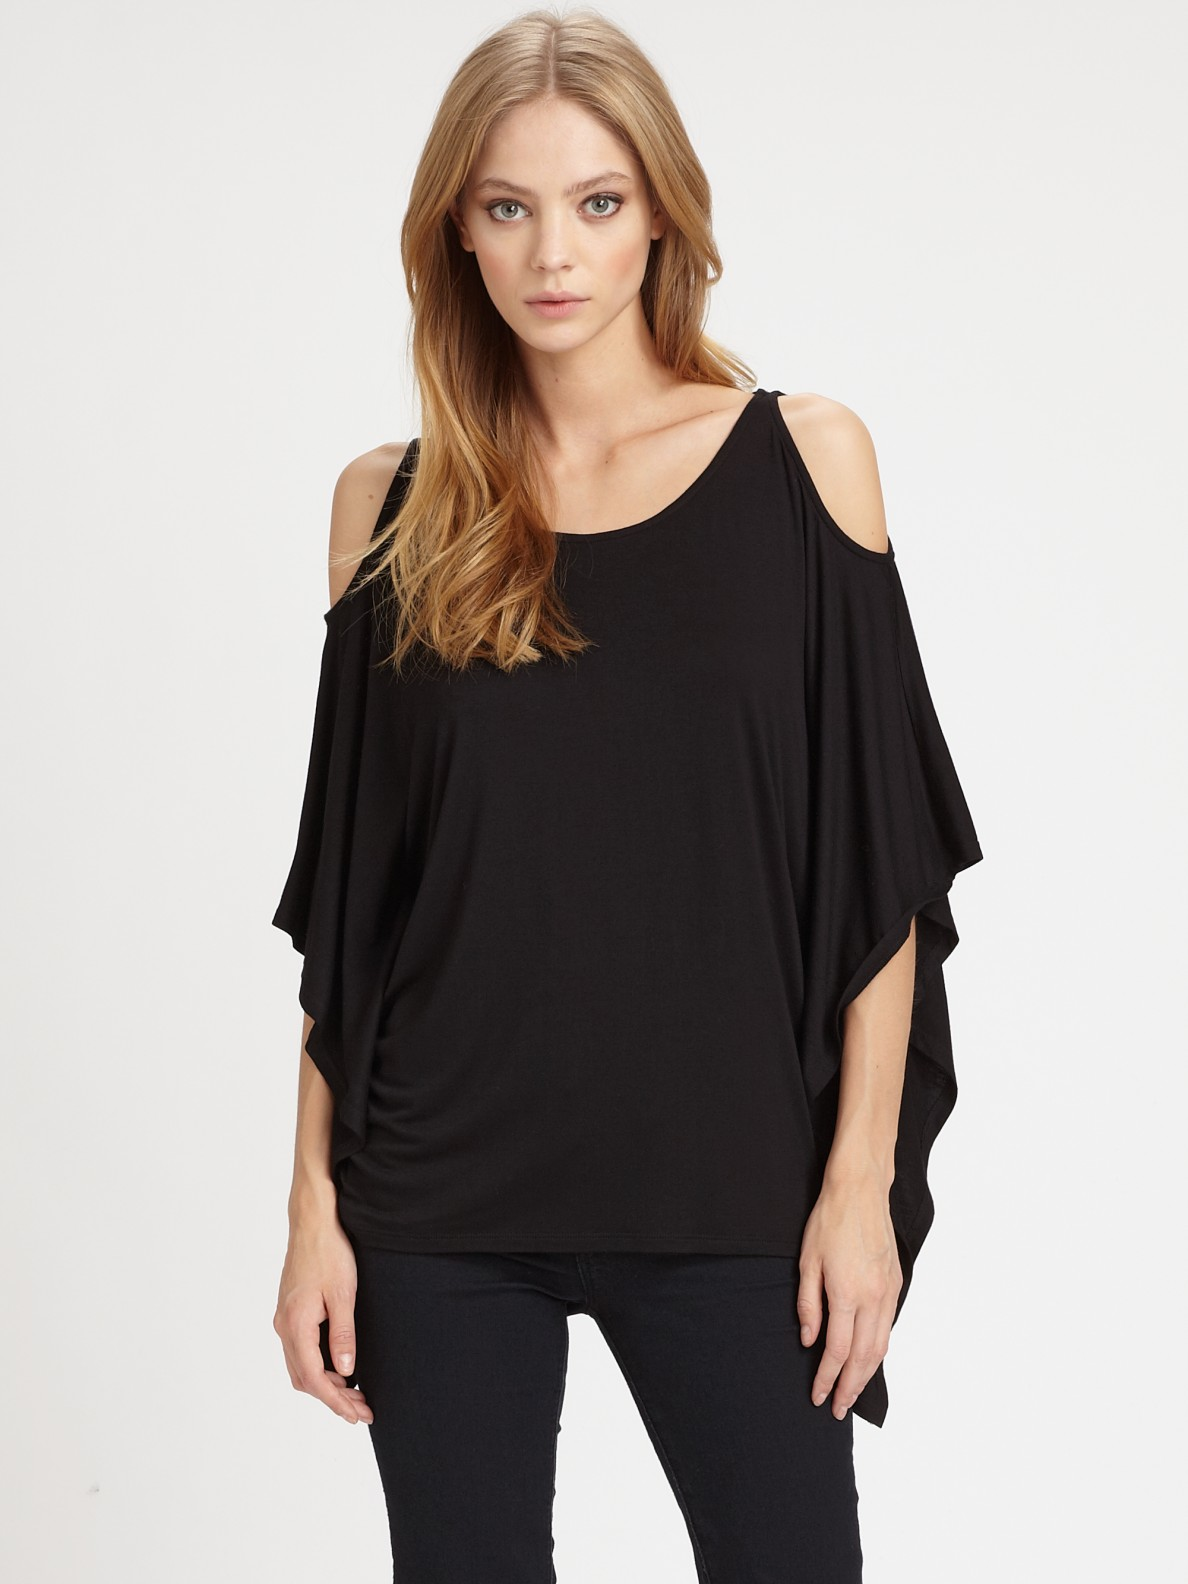 Shop open shoulder top from Chloé, Fendi, Gucci and from palmmetrf1.ga, Italist, Saks Fifth Avenue and many more. Find thousands of new high fashion items in one place.